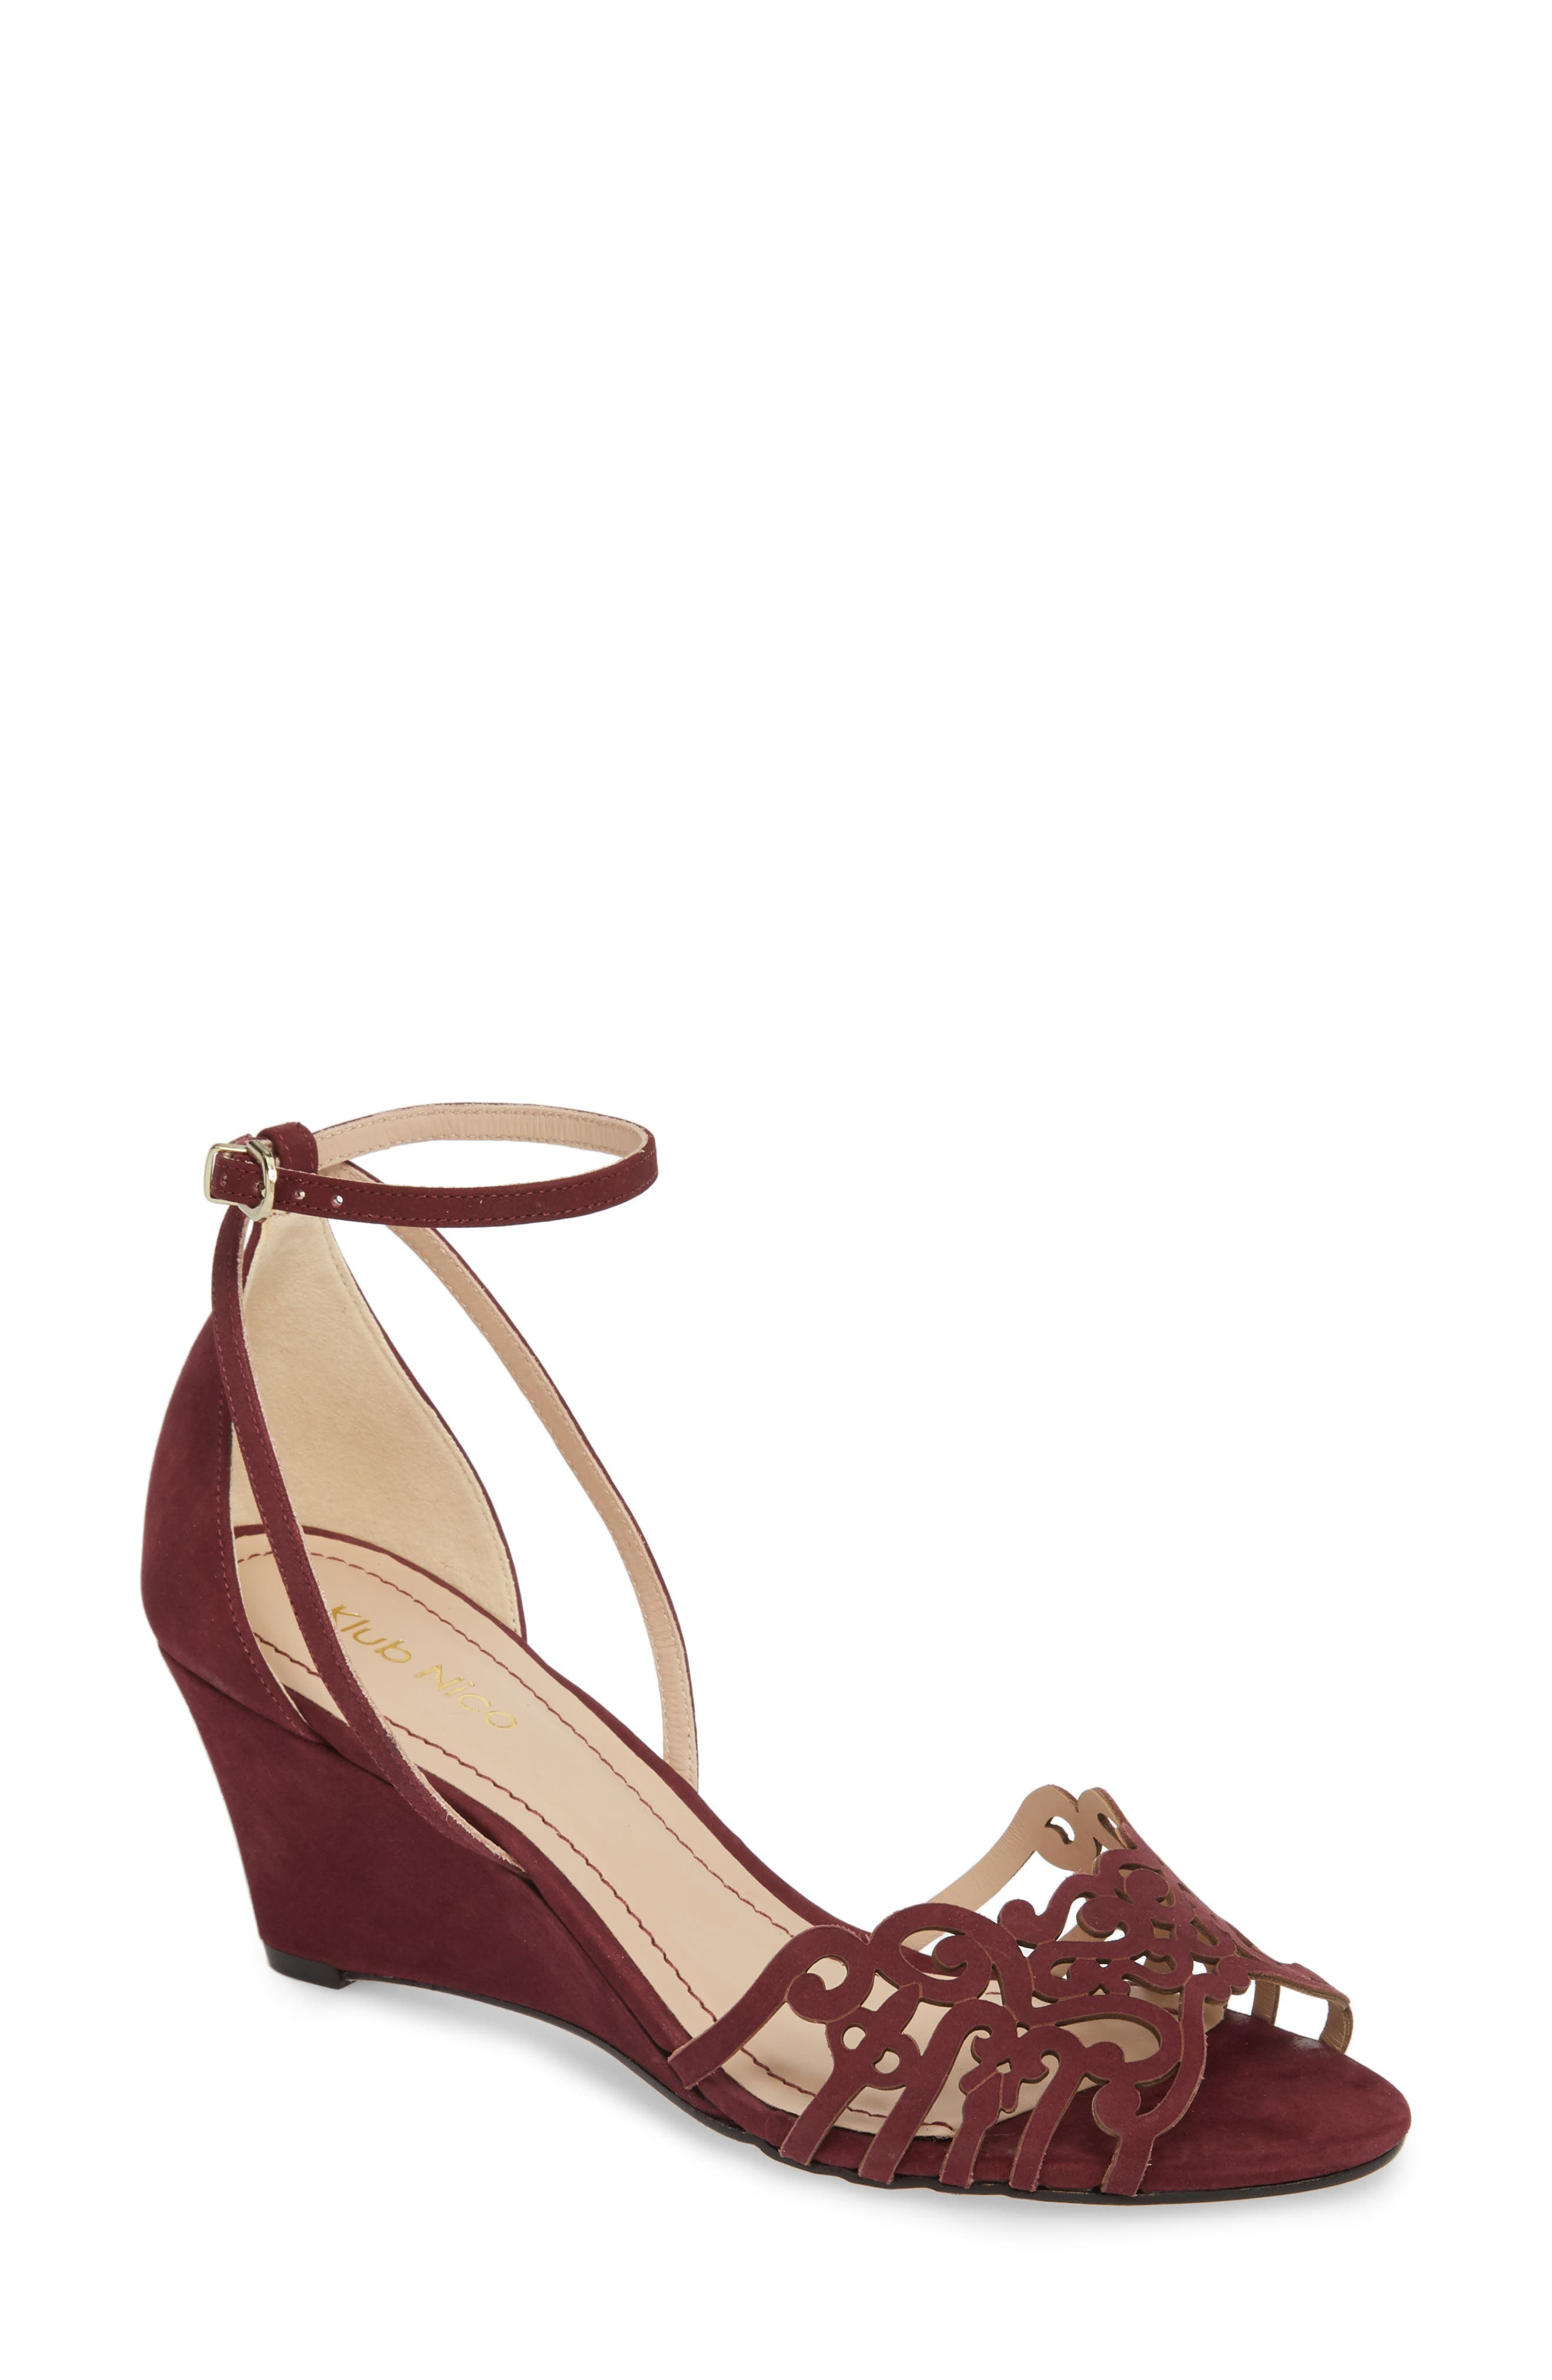 'Kingston' Ankle Strap Wedge Sandal,                         Main,                         color, Wine Leather